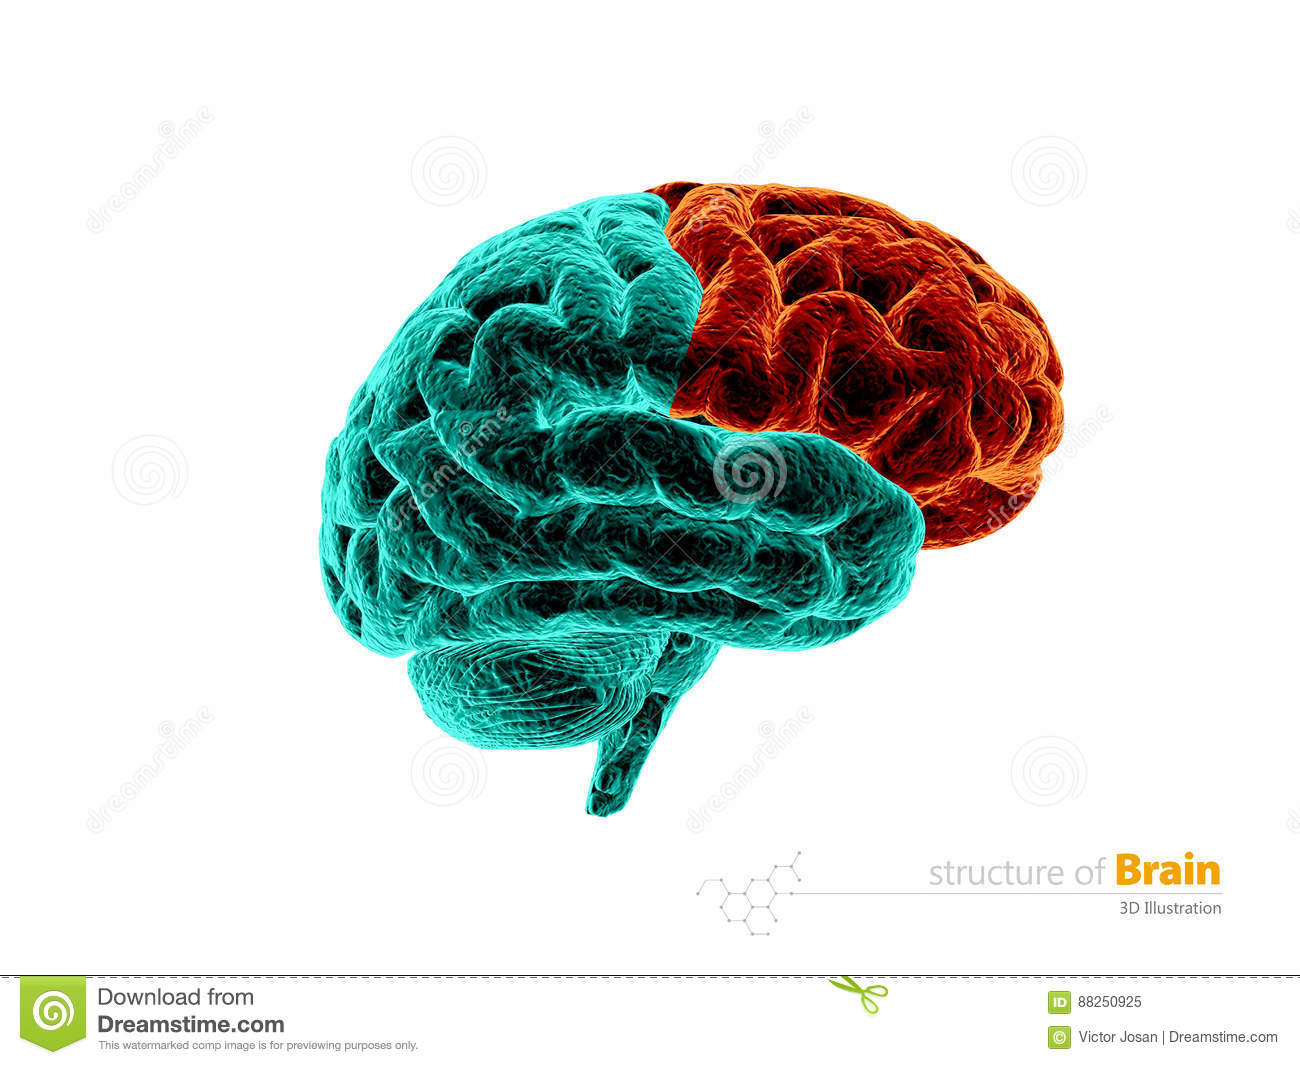 Human Brain, Frontal Lobe Anatomy Structure. Human Brain Anatomy 3d ...